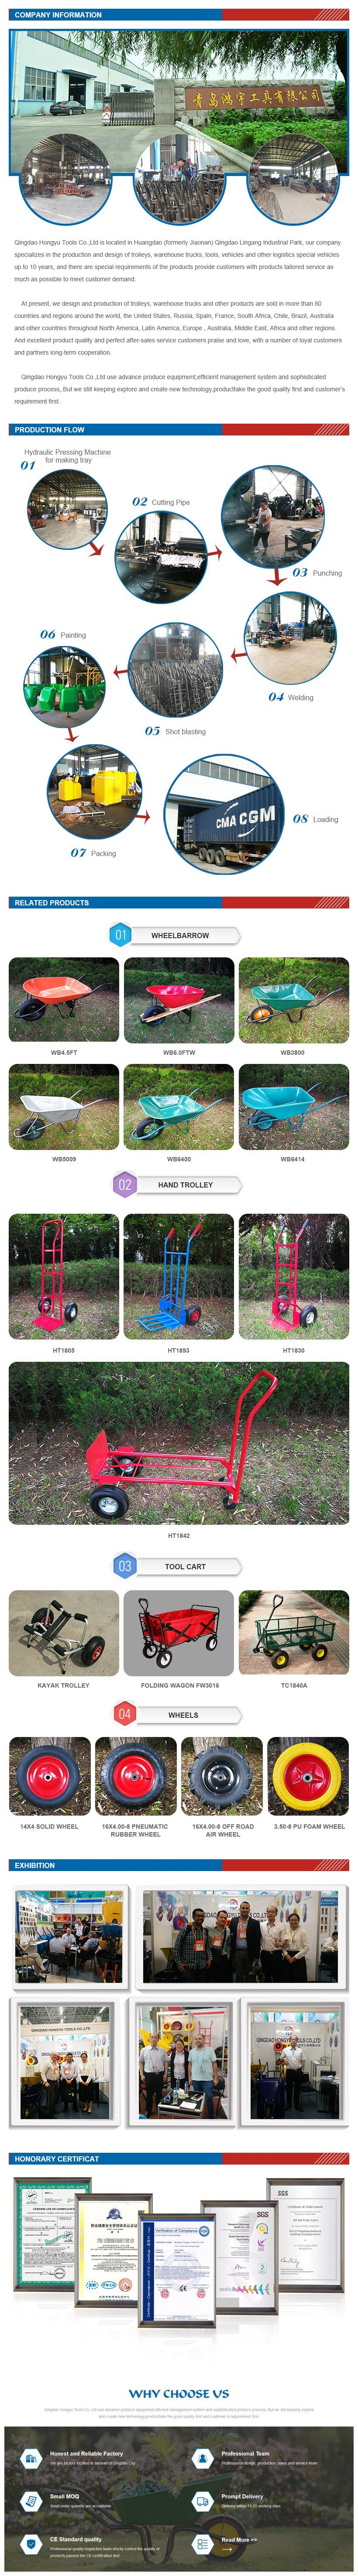 Extra Heavy Duty Folding Hand Trolley with Toe Plate Extension